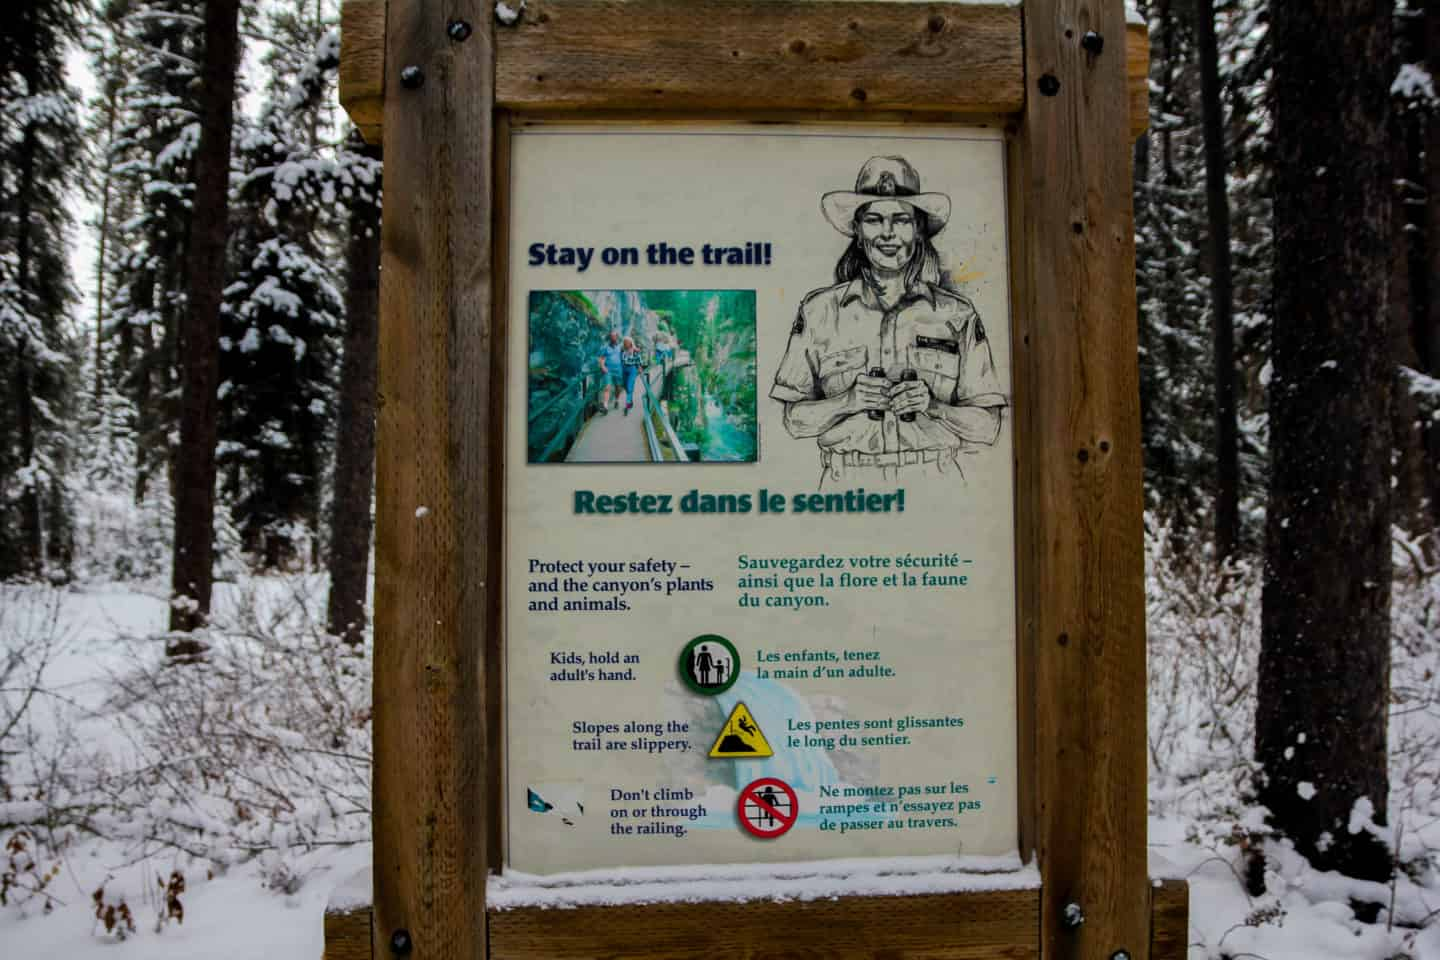 Staying on the trail is important for hiking the Johnston Canyon